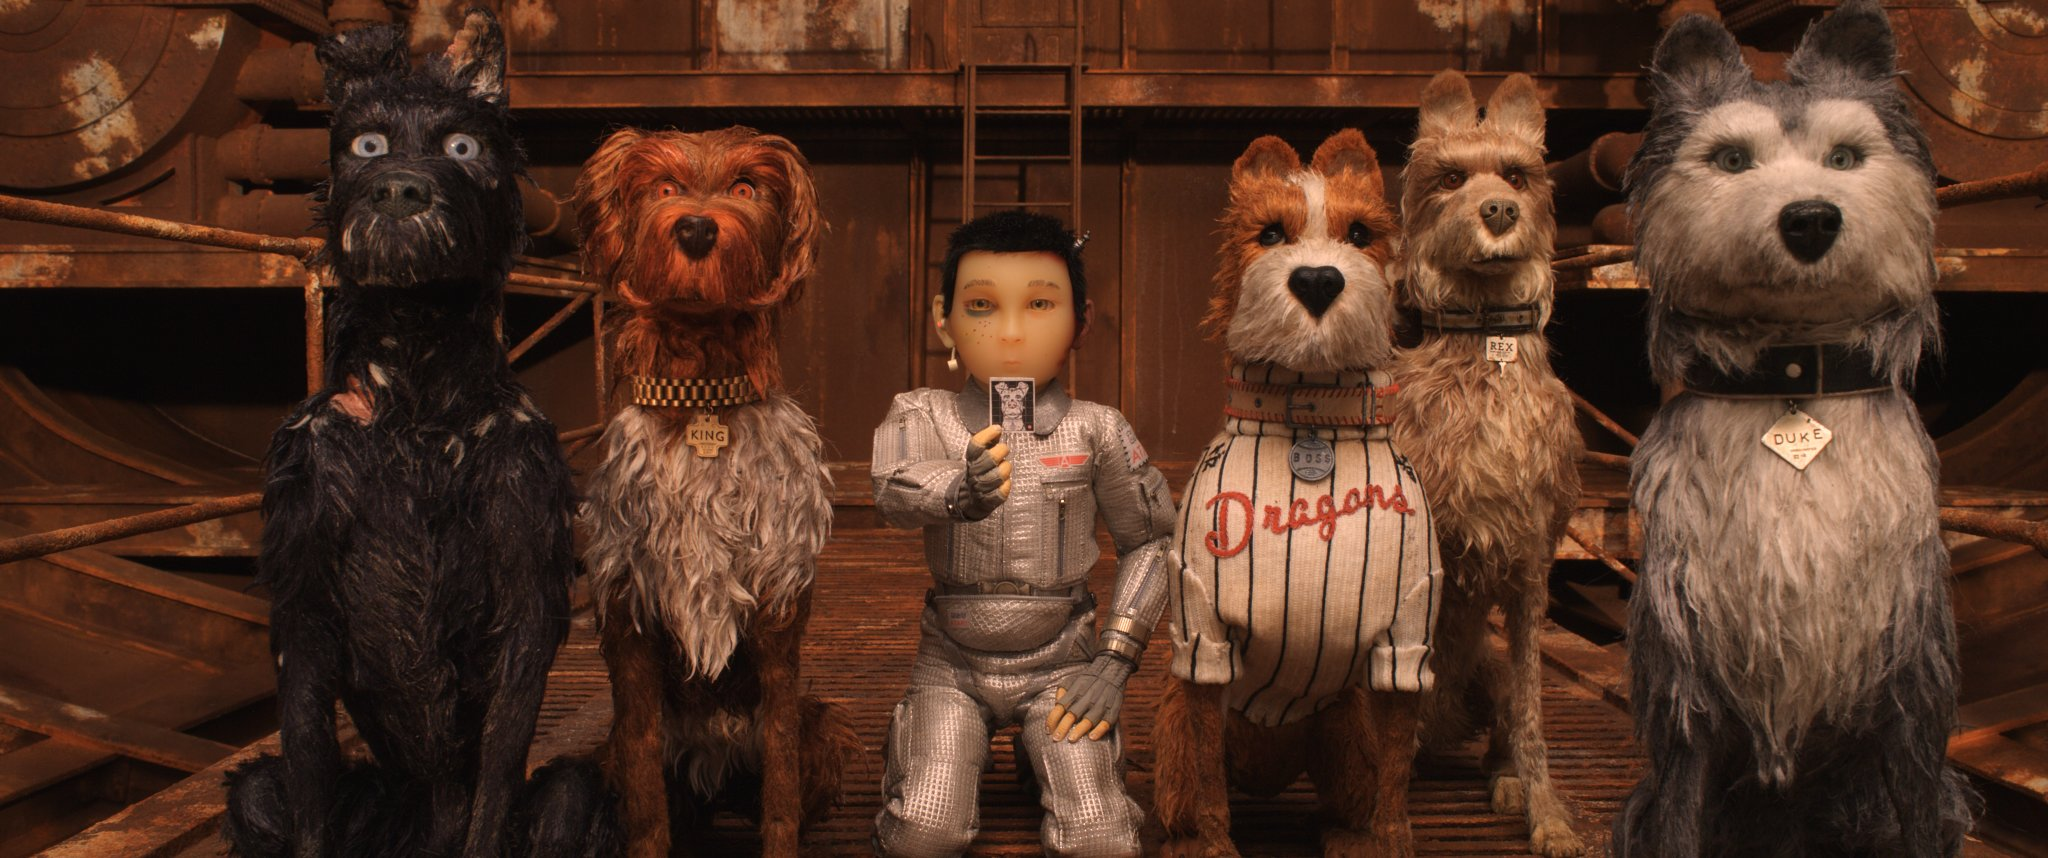 Isle of Dogs (Dir. Wes Anderson, 2018)